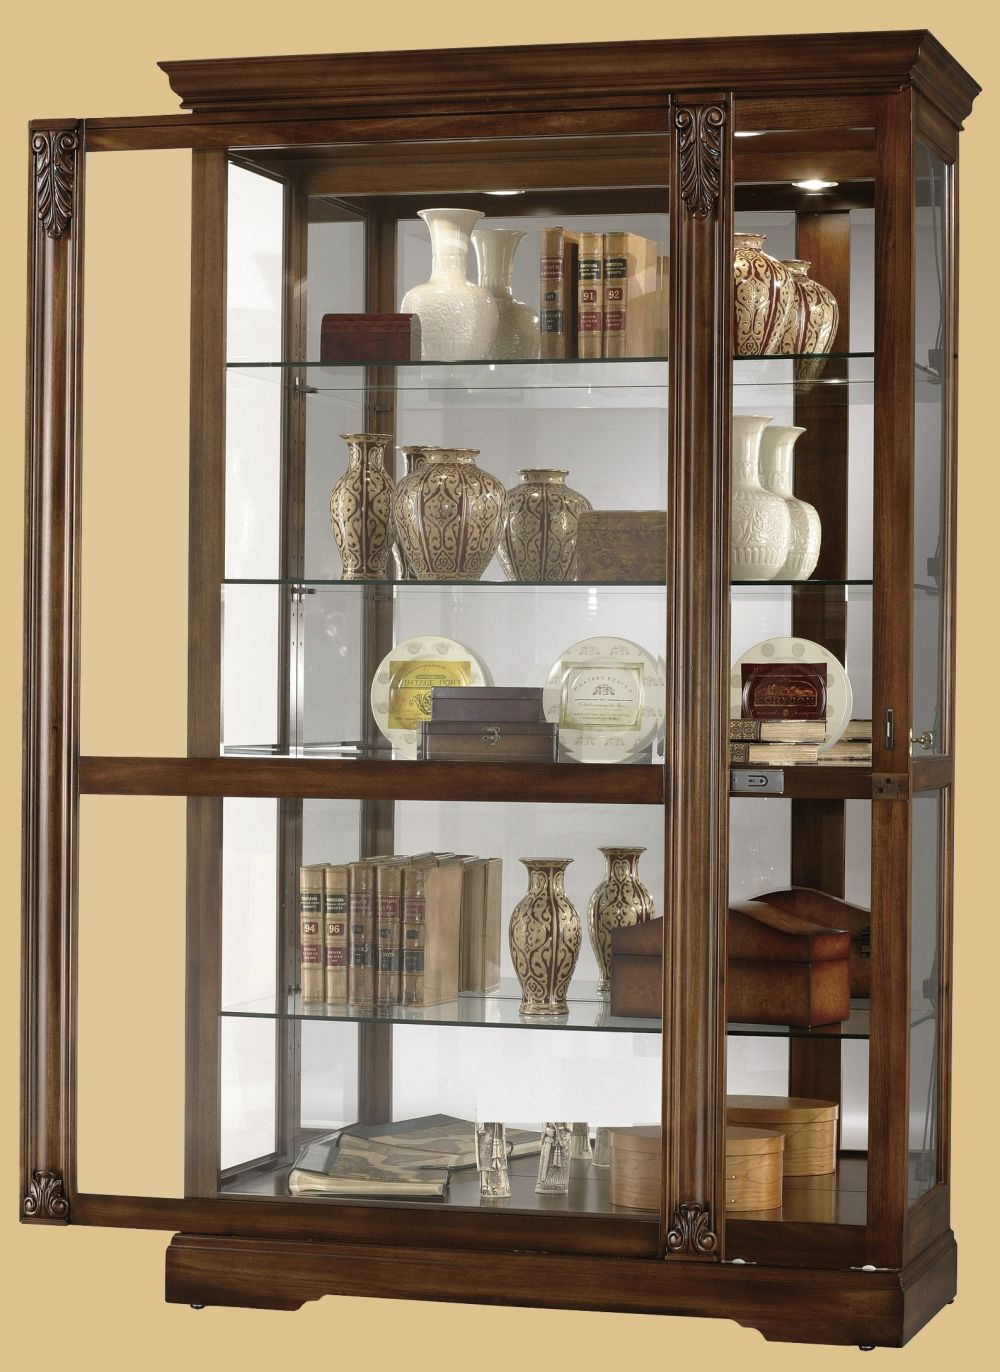 wooden-brown-mounted-big-cabinet-wall-mounted-curio-cabinet-and-what-to-consider-when-purchasing